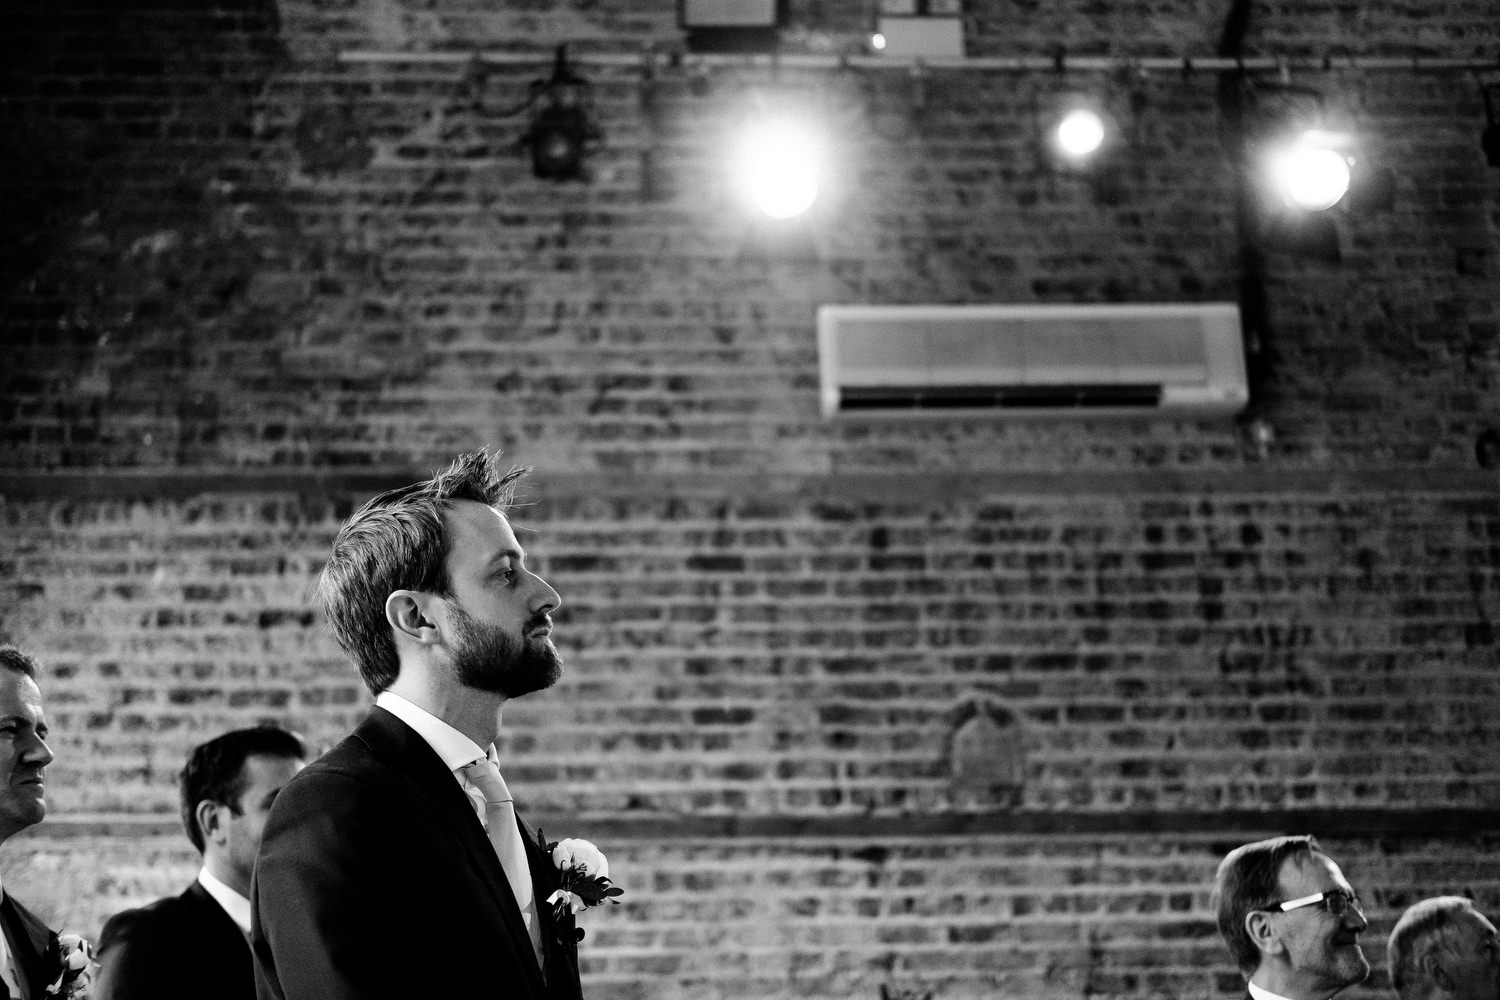 dmp0200_dublin_alley_photography_david_mcclelland_ceremony_humanist_documentary_theatre_smock_wedding_photographer